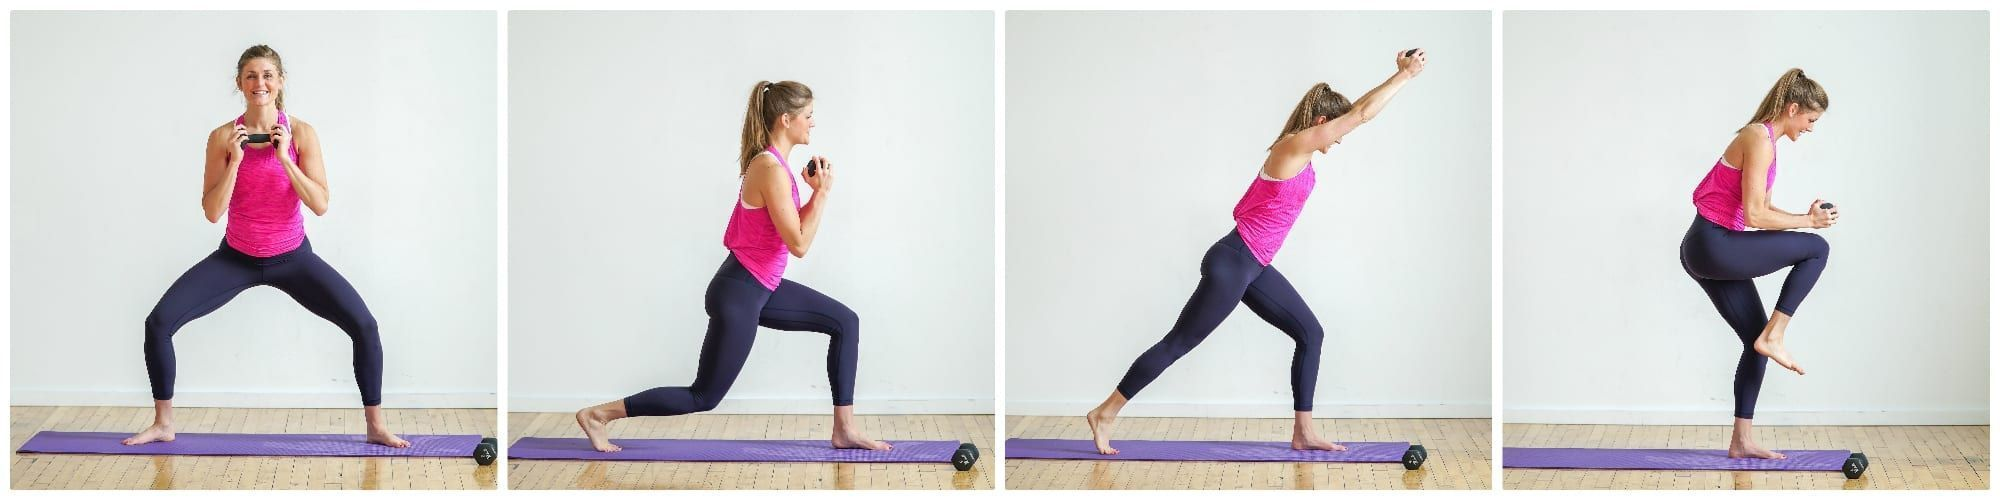 20-Minute Cardio Barre Home Workout #cardiobarre Pliè Squat + Lunge + Knee Drive Combo | Cardio Barre Workout #cardiobarre 20-Minute Cardio Barre Home Workout #cardiobarre Pliè Squat + Lunge + Knee Drive Combo | Cardio Barre Workout #cardiobarre 20-Minute Cardio Barre Home Workout #cardiobarre Pliè Squat + Lunge + Knee Drive Combo | Cardio Barre Workout #cardiobarre 20-Minute Cardio Barre Home Workout #cardiobarre Pliè Squat + Lunge + Knee Drive Combo | Cardio Barre Workout #cardiobarre